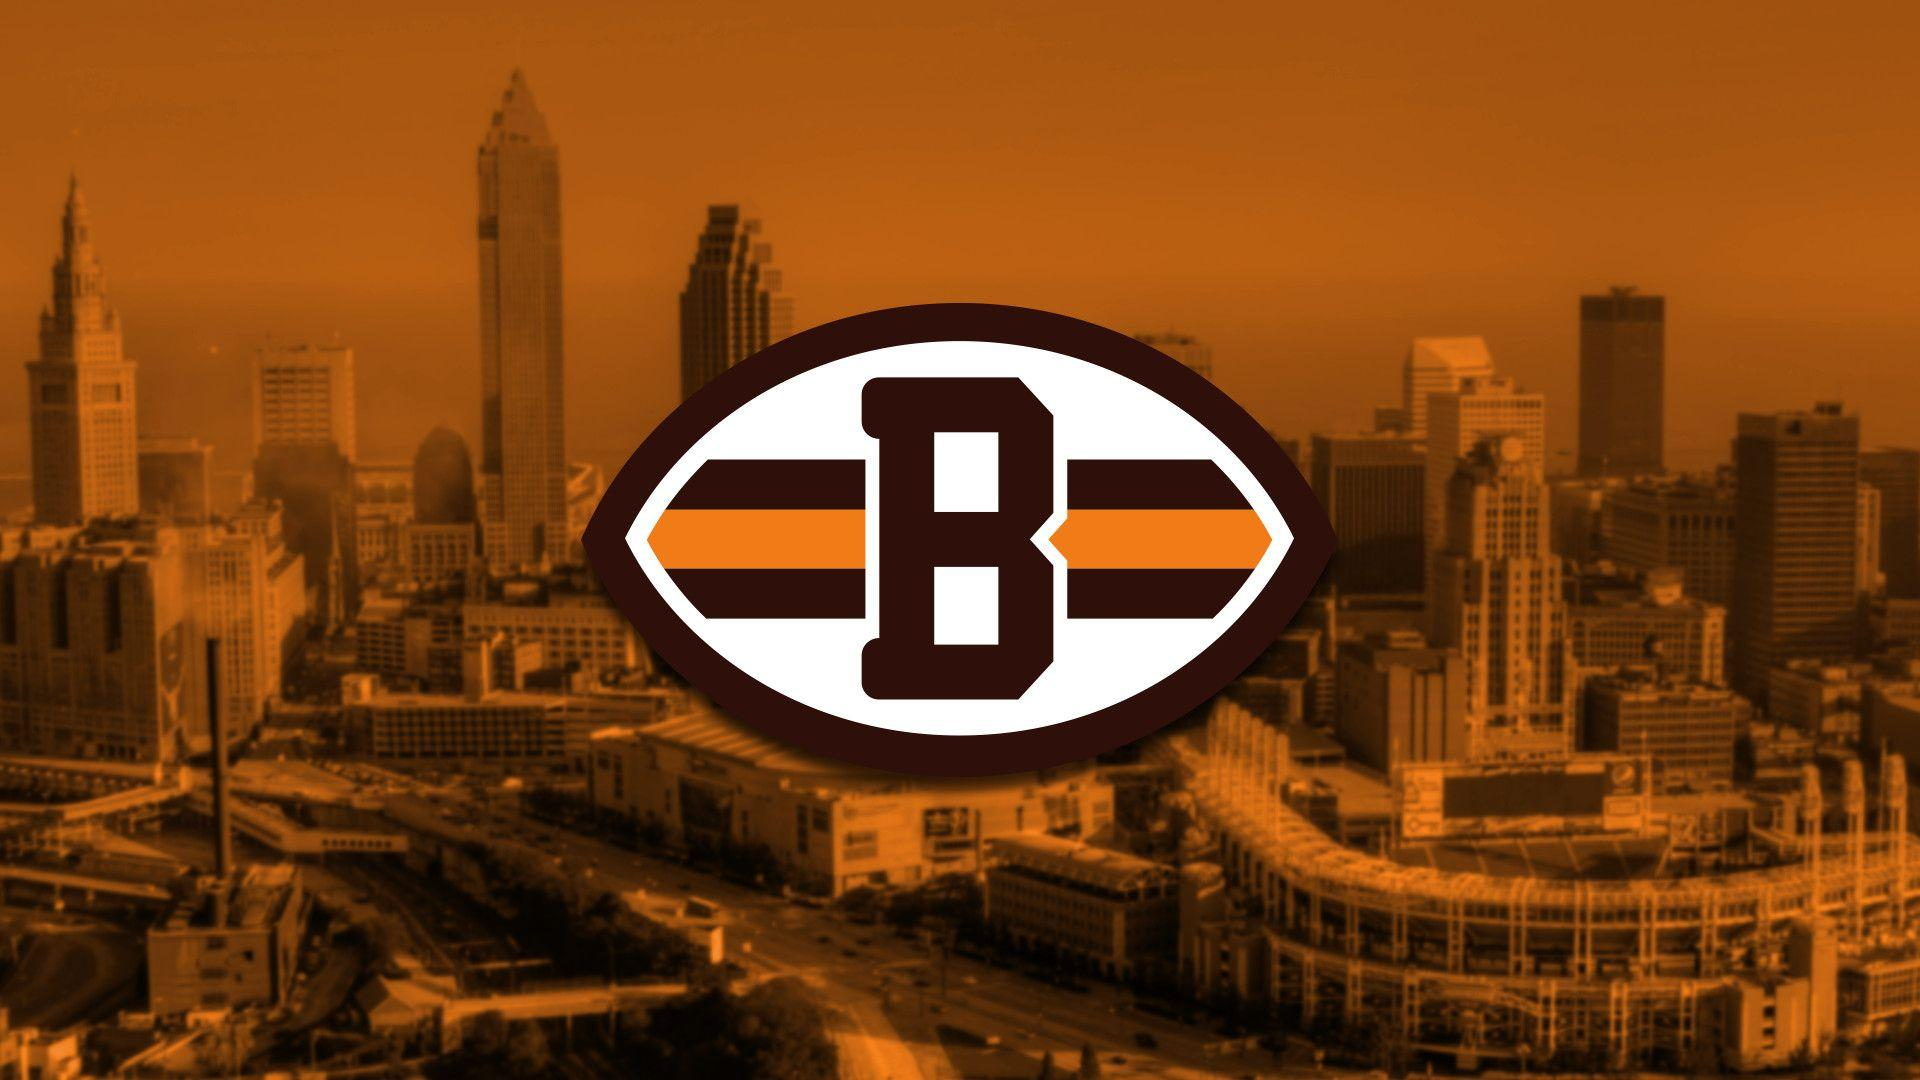 Cleveland Browns Desktop Wallpaper 56010 | Best Free Desktop HD ...